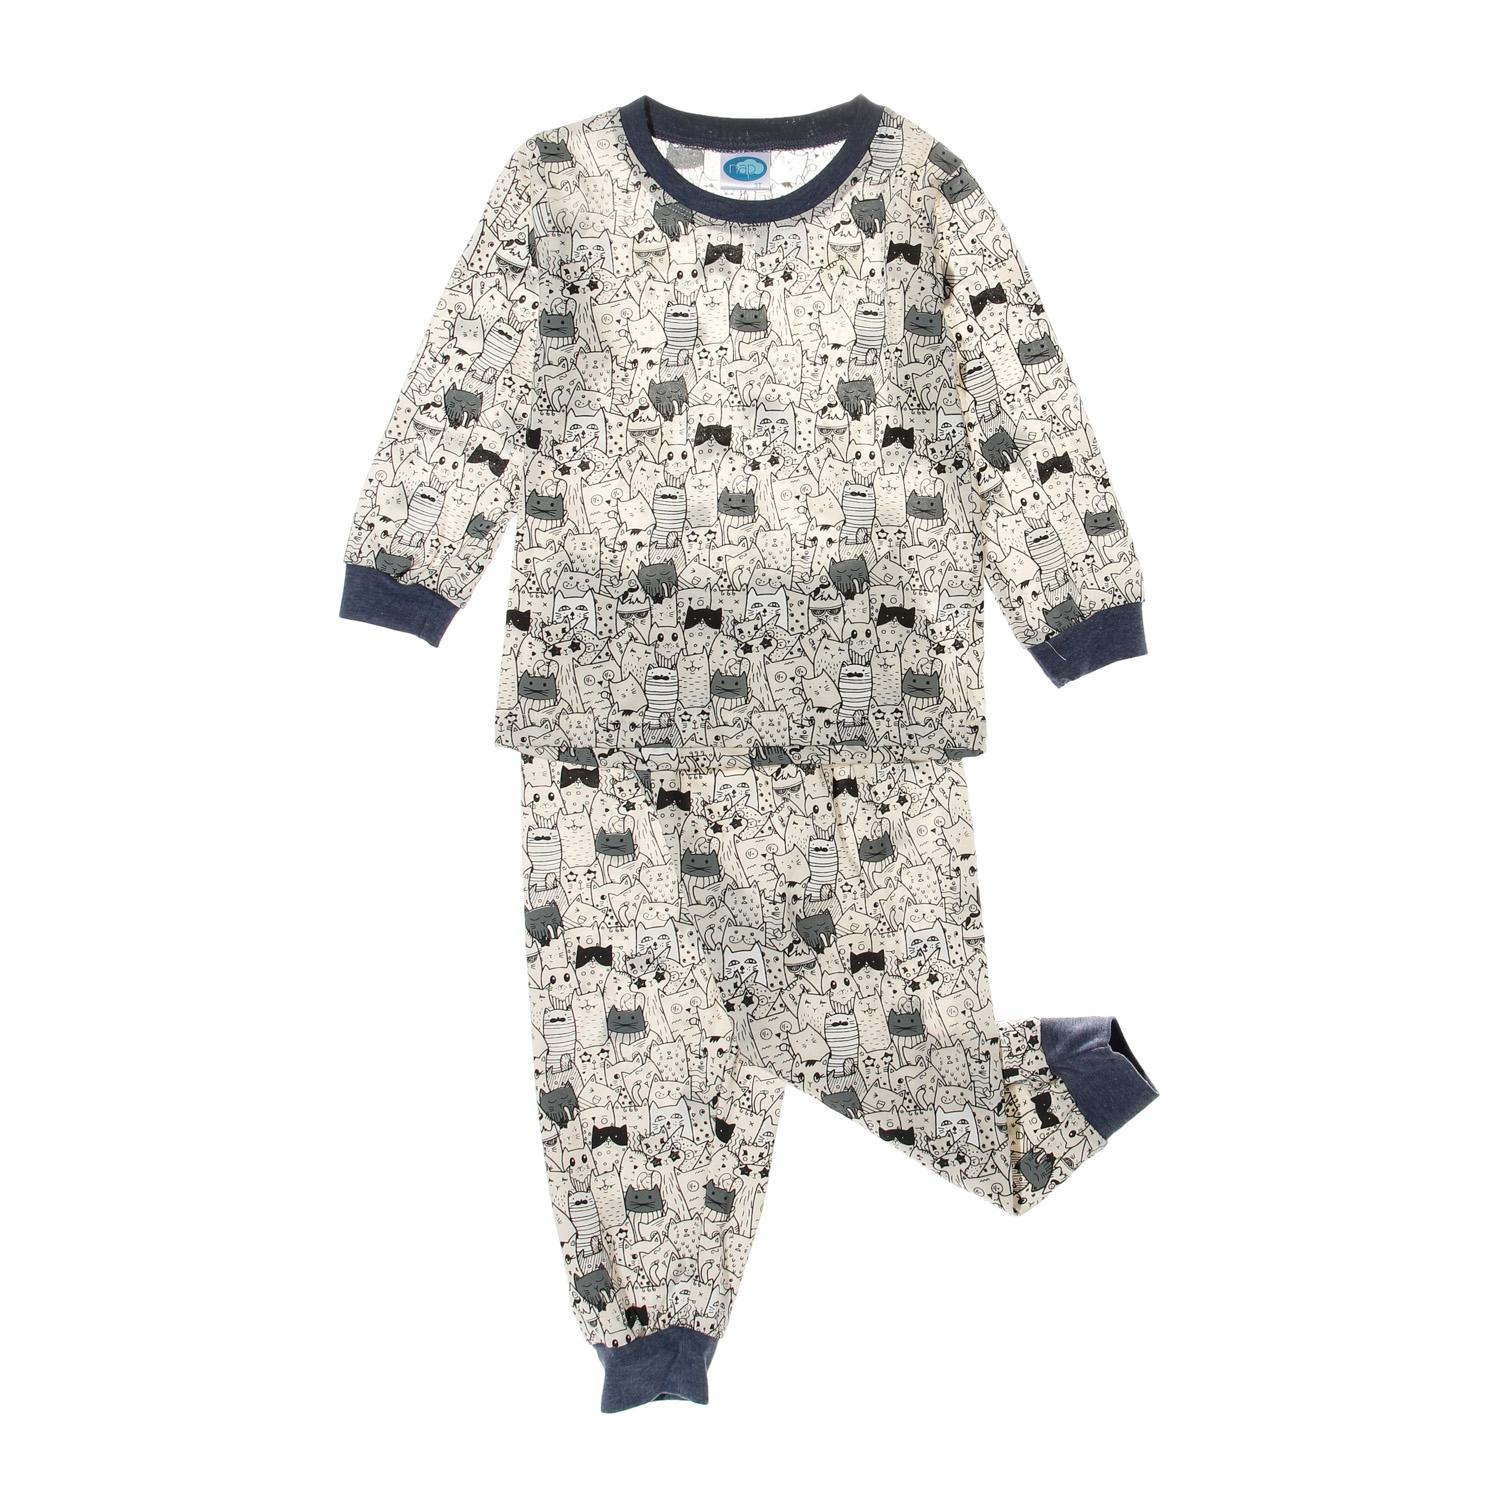 Nap Toddler Boys Cat Pajama Set In Cream By The Sm Store.